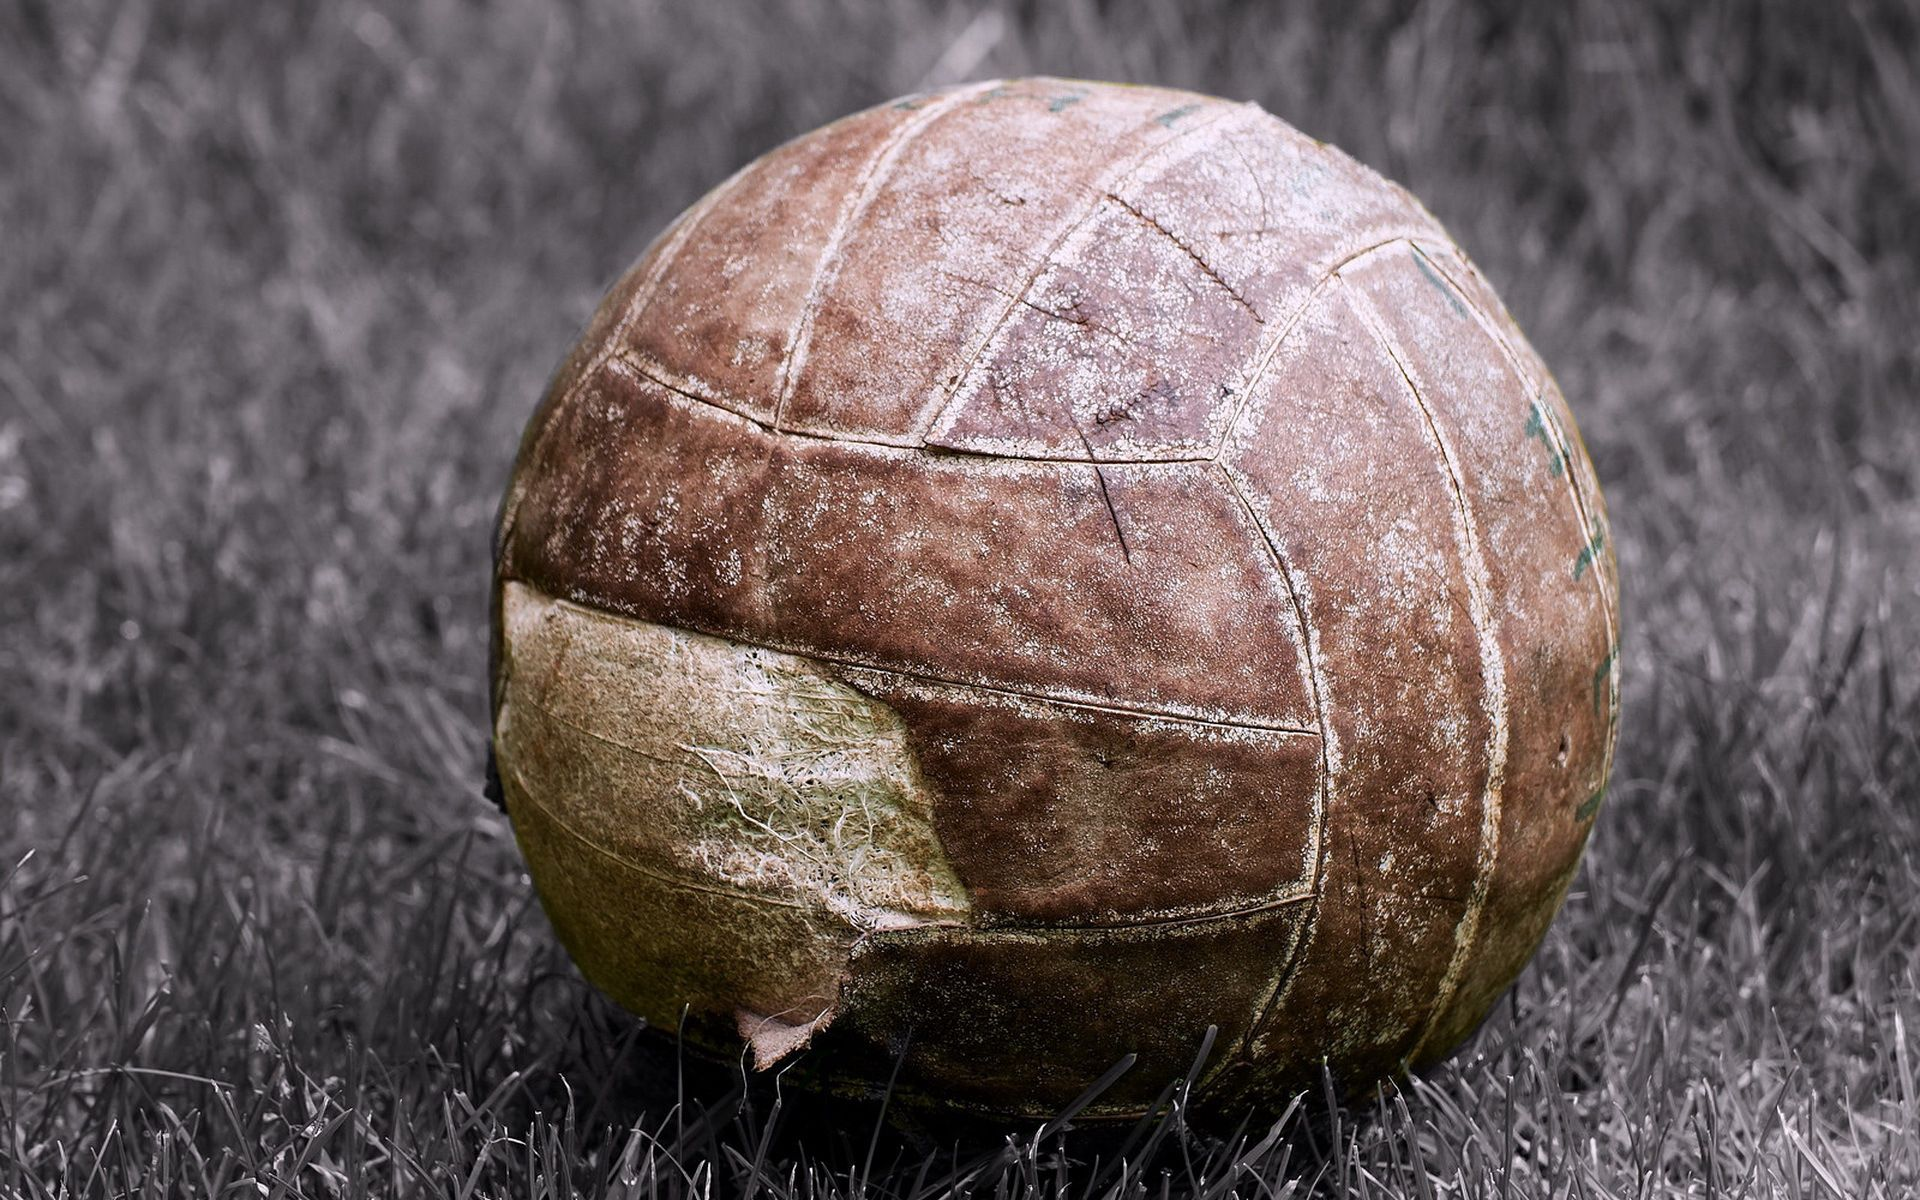 76349 download wallpaper Football, Sports, Old, Ball, Ragged screensavers and pictures for free